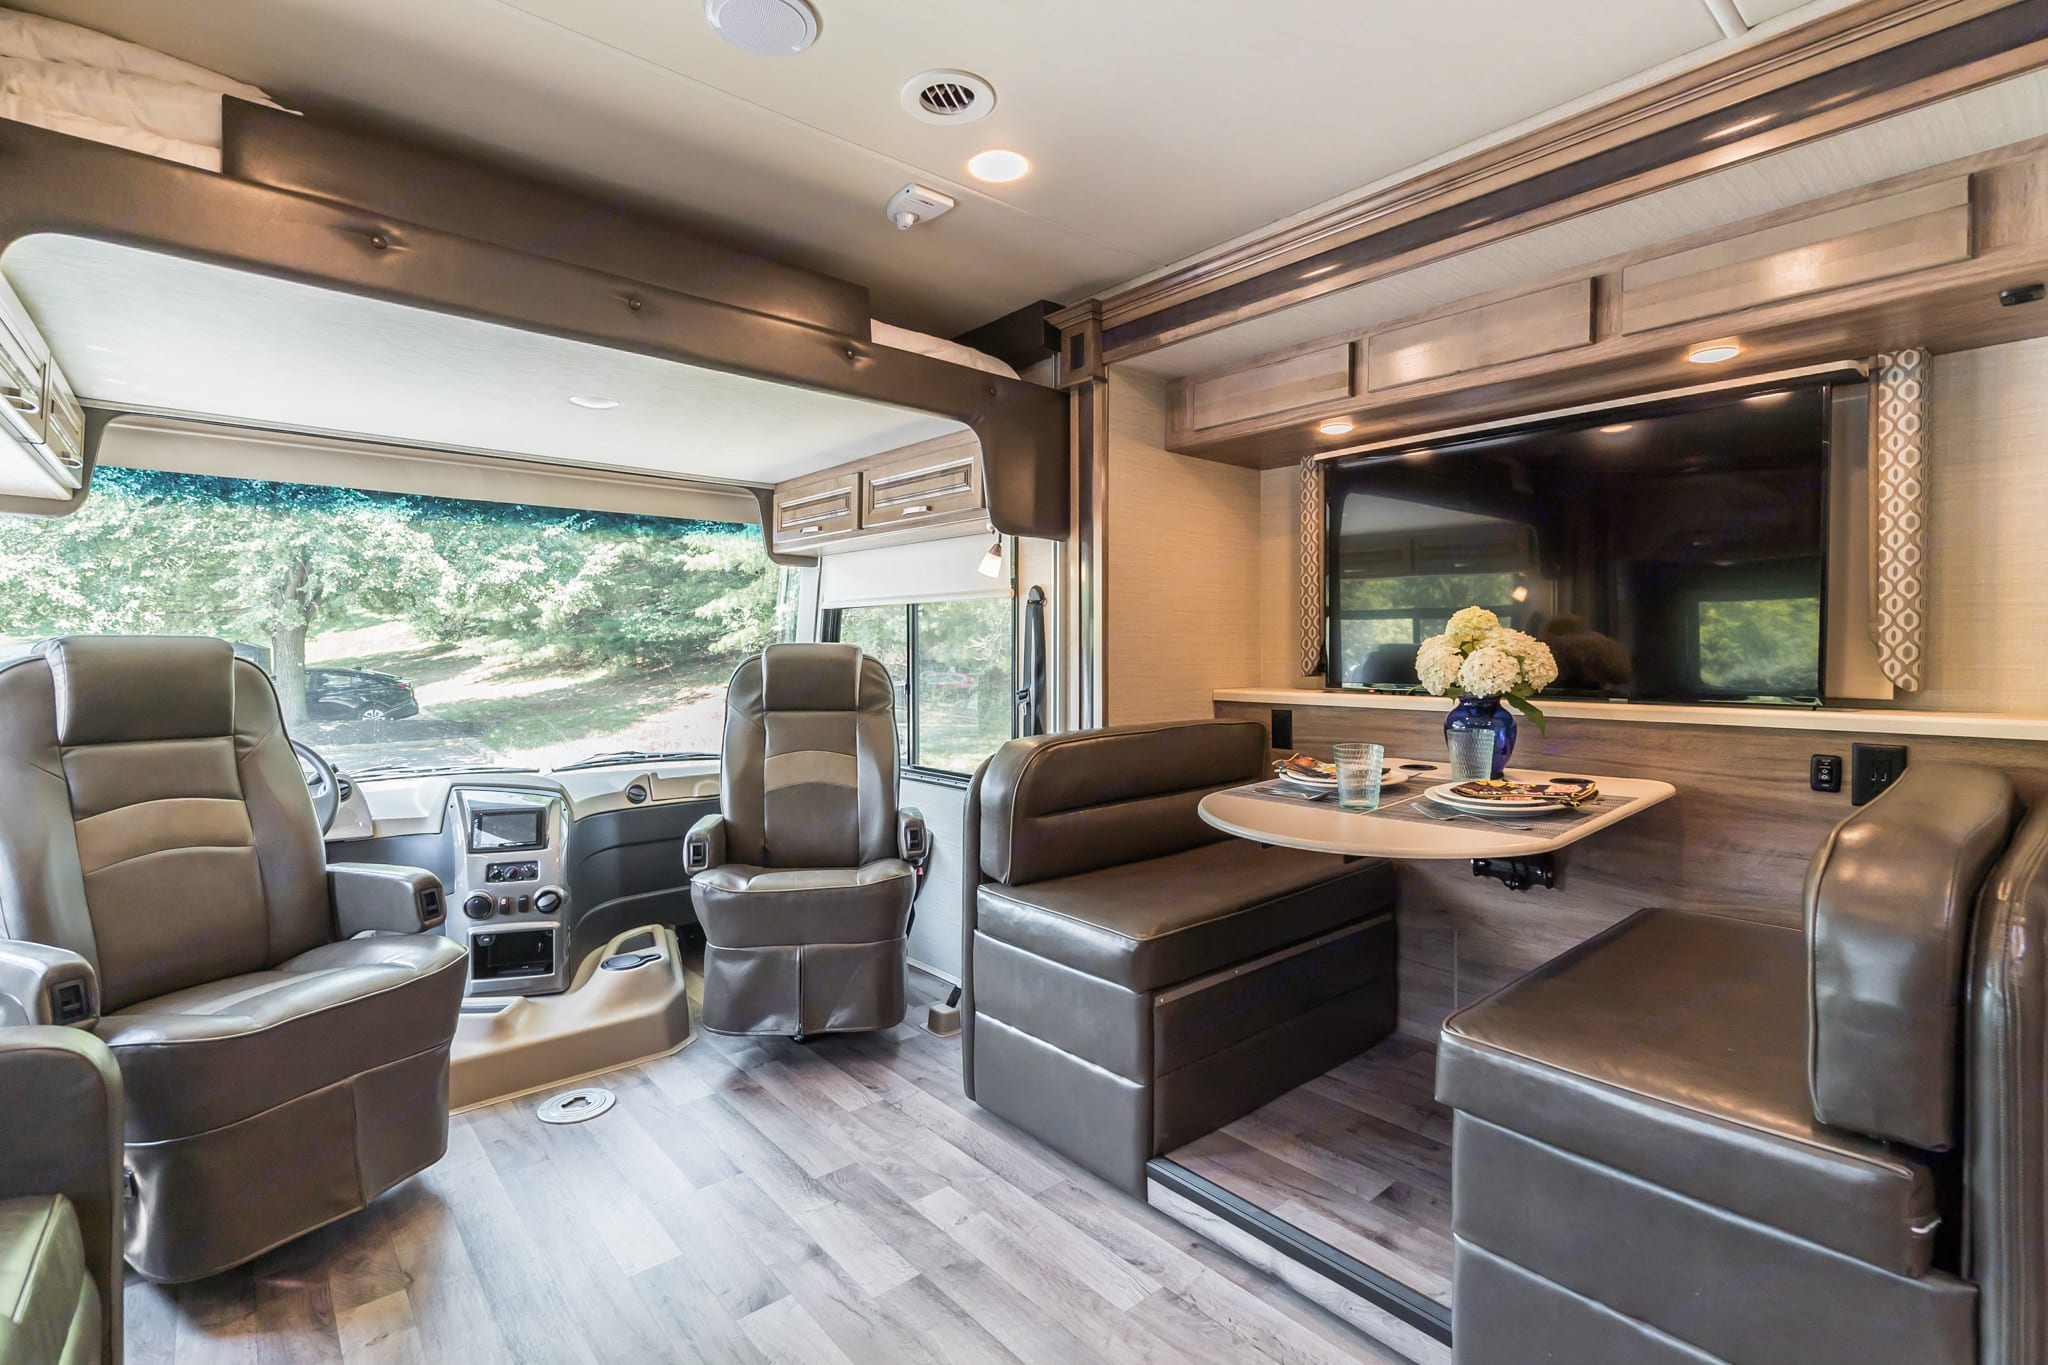 "50"" smart TV - dinette folds into bed, and bunk will sleep 2 and hold upto 750 pounds. Jayco Precept 2019"